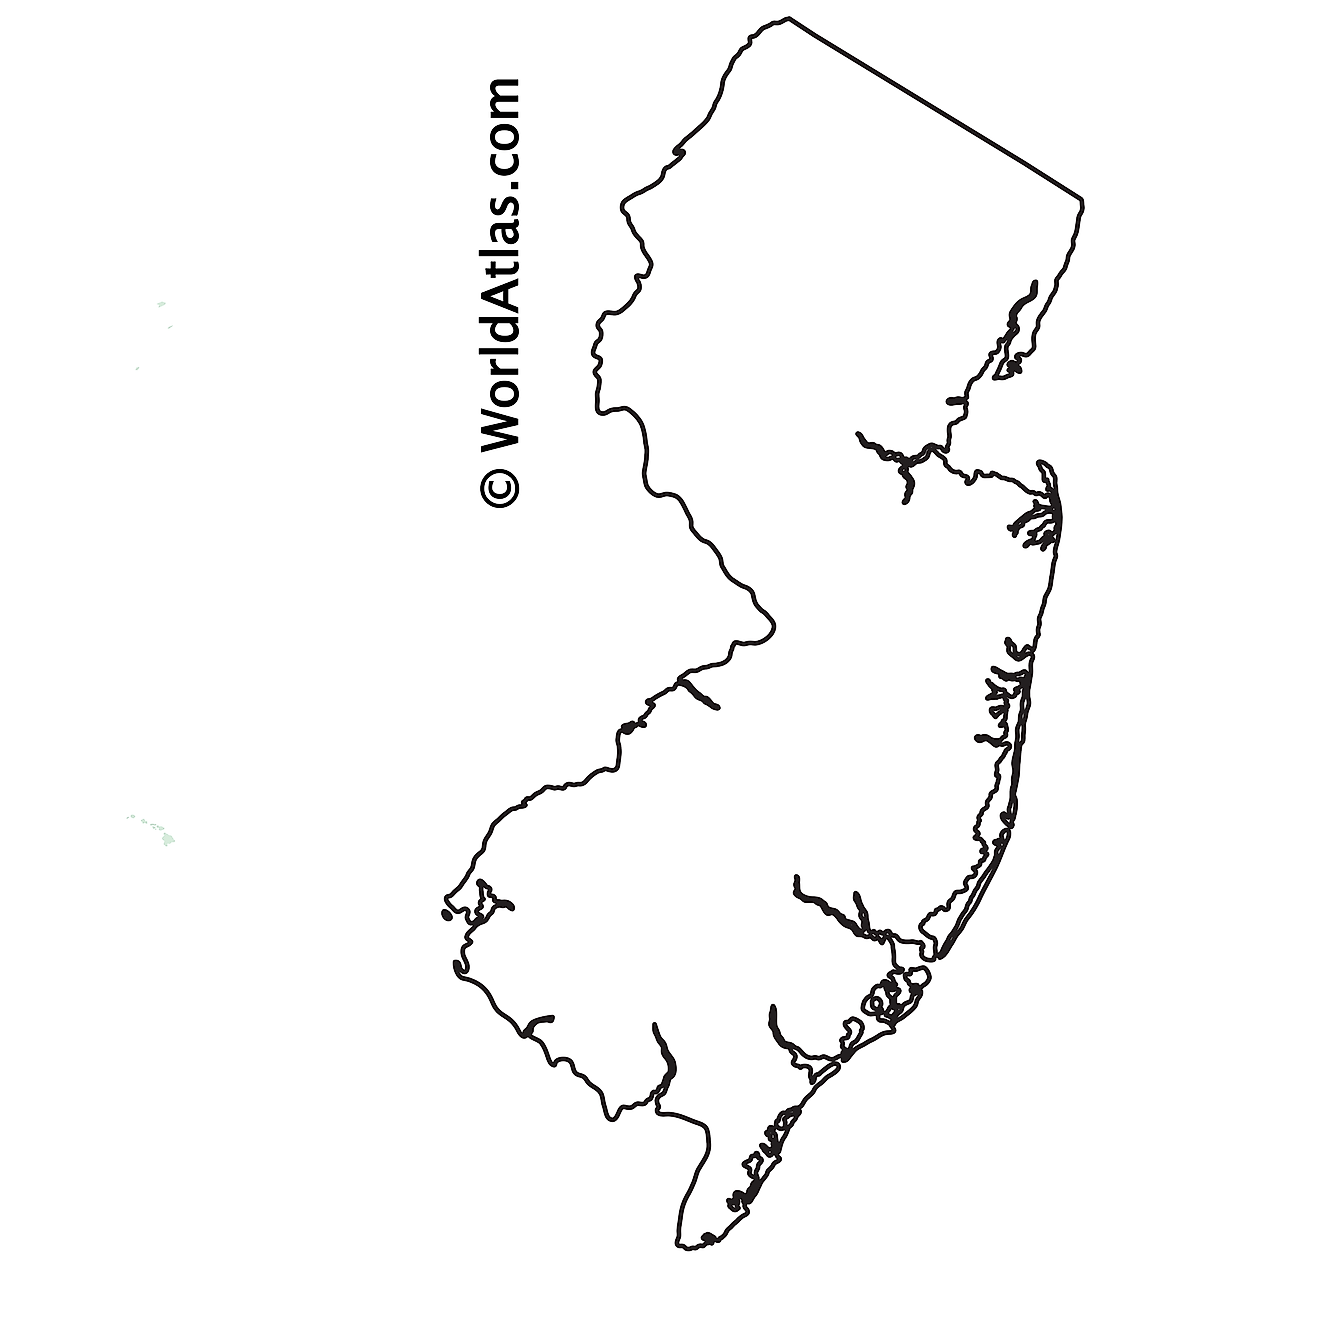 Blank Outline Map of New Jersey